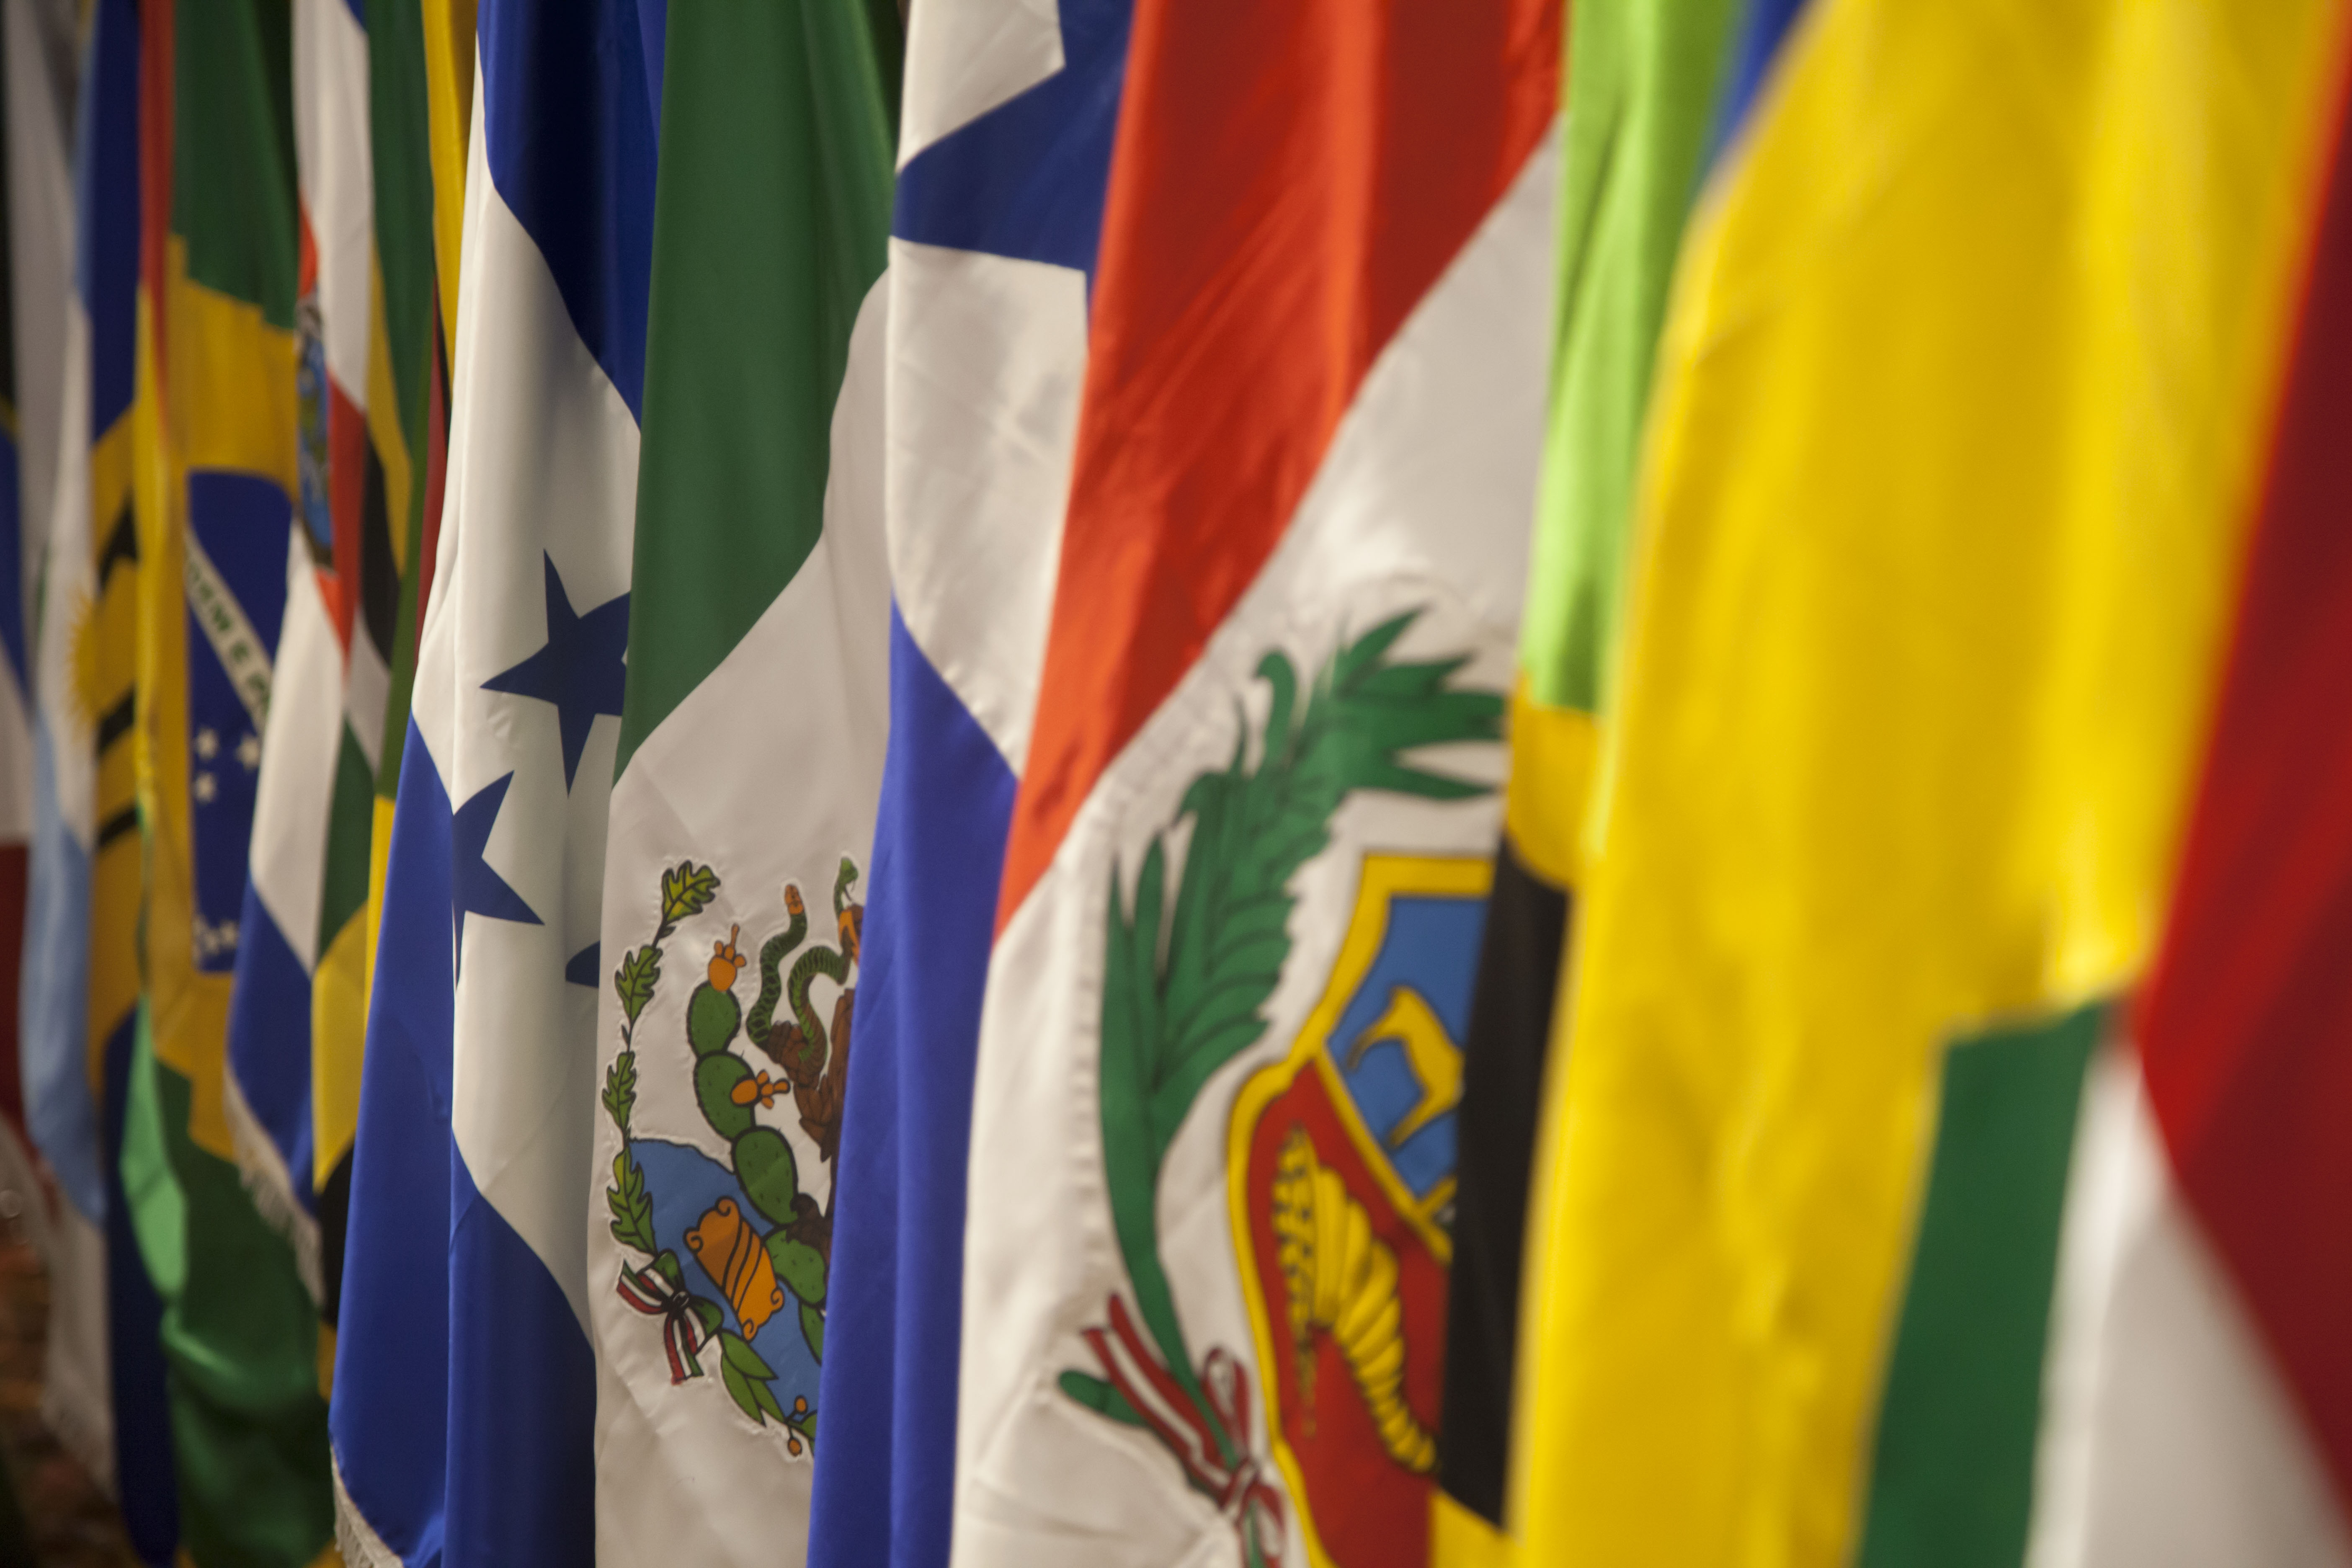 Flags of some Latin American countries. Credit: Wikimedia Commons